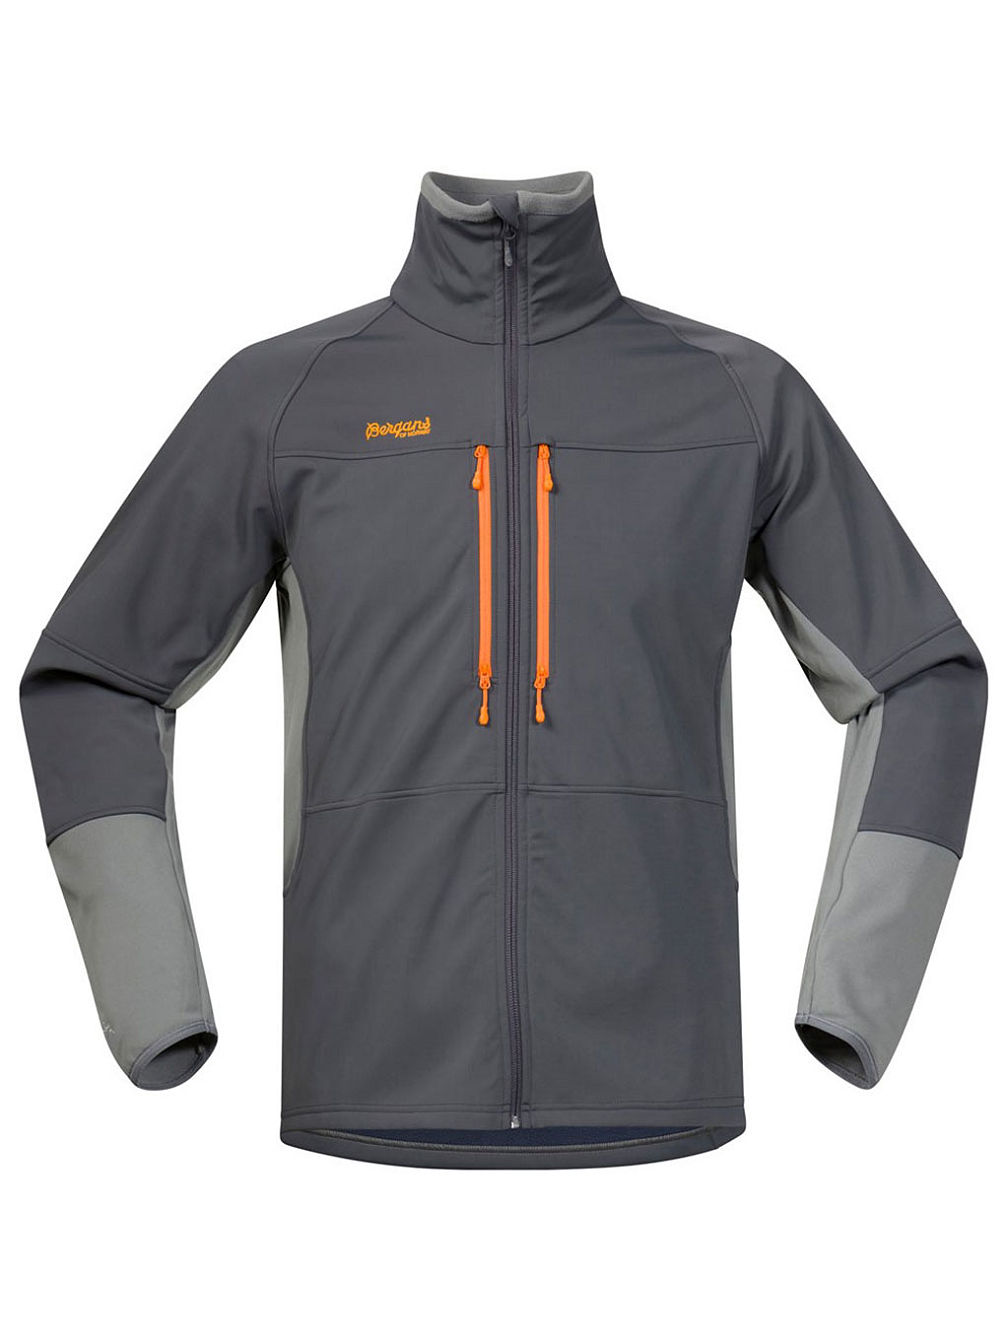 Visbretind Outdoor Jacket